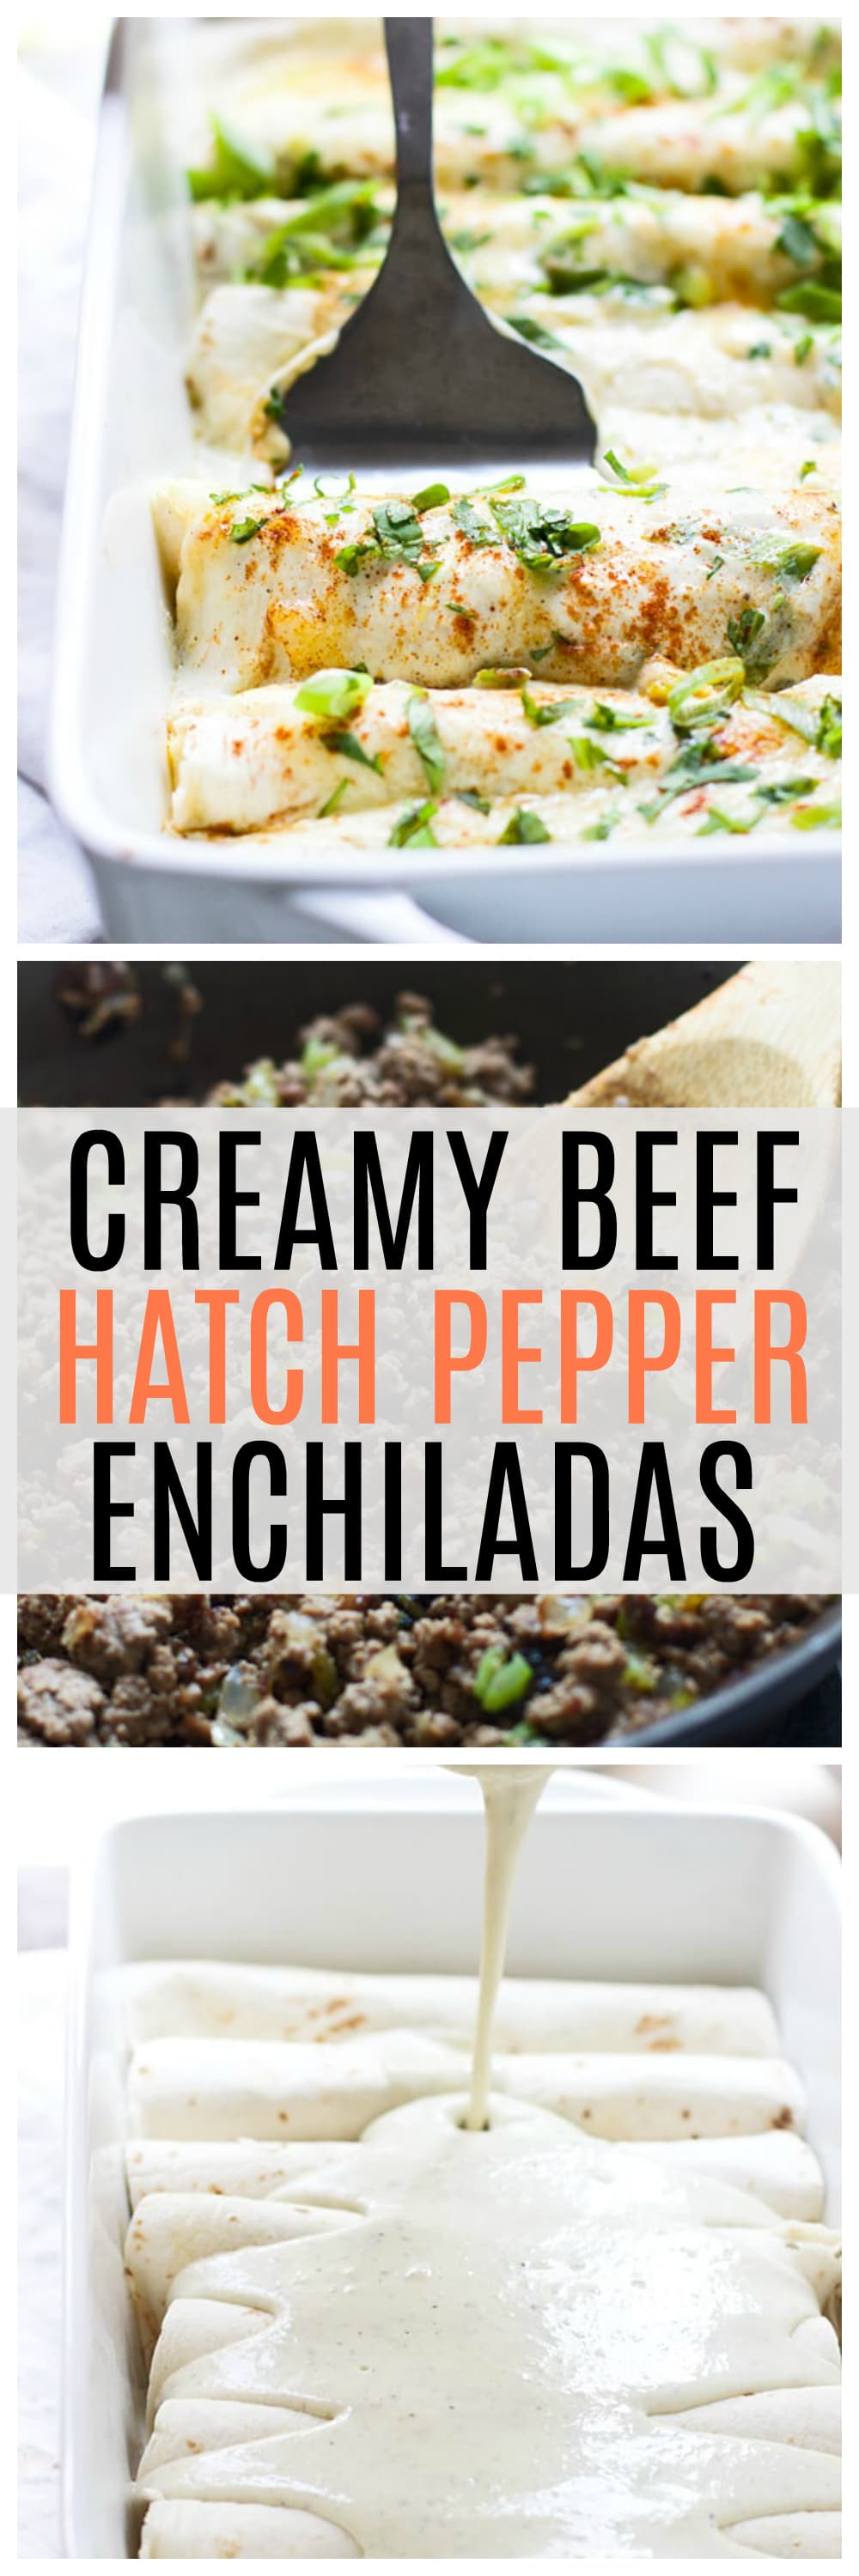 Creamy Beef and Hatch Pepper Enchiladas